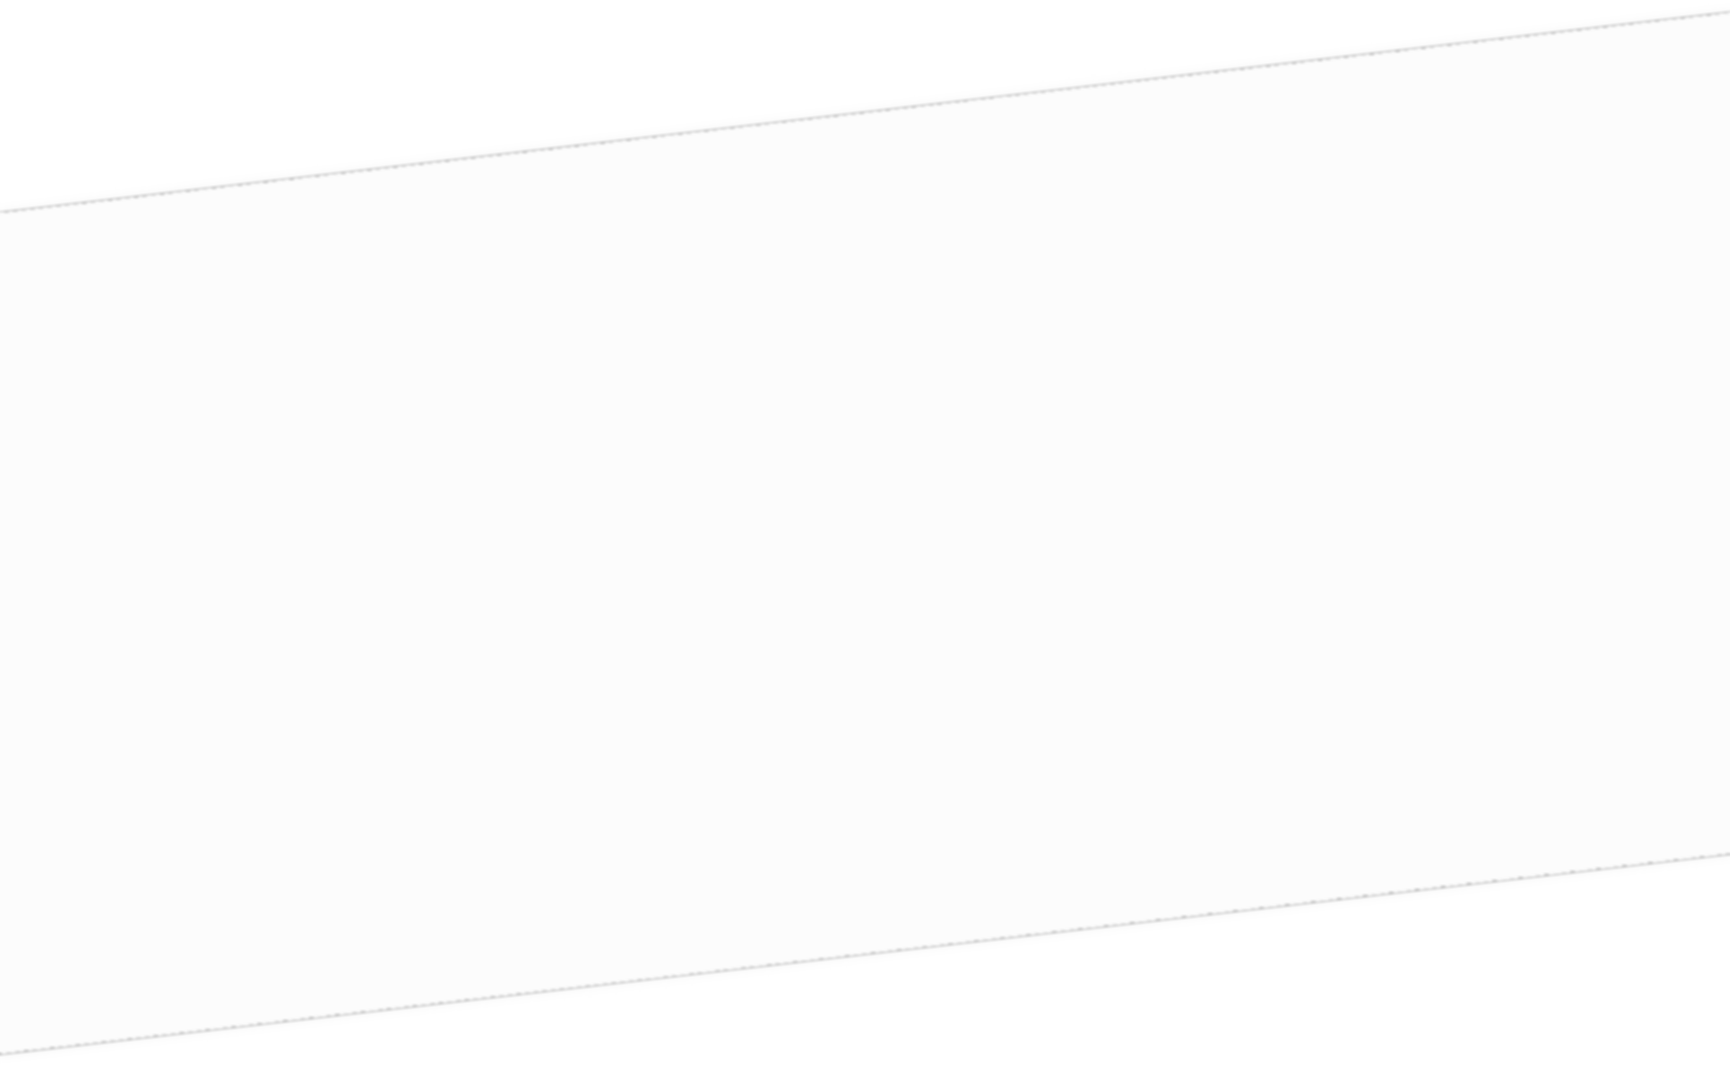 rectangle-features-01.png